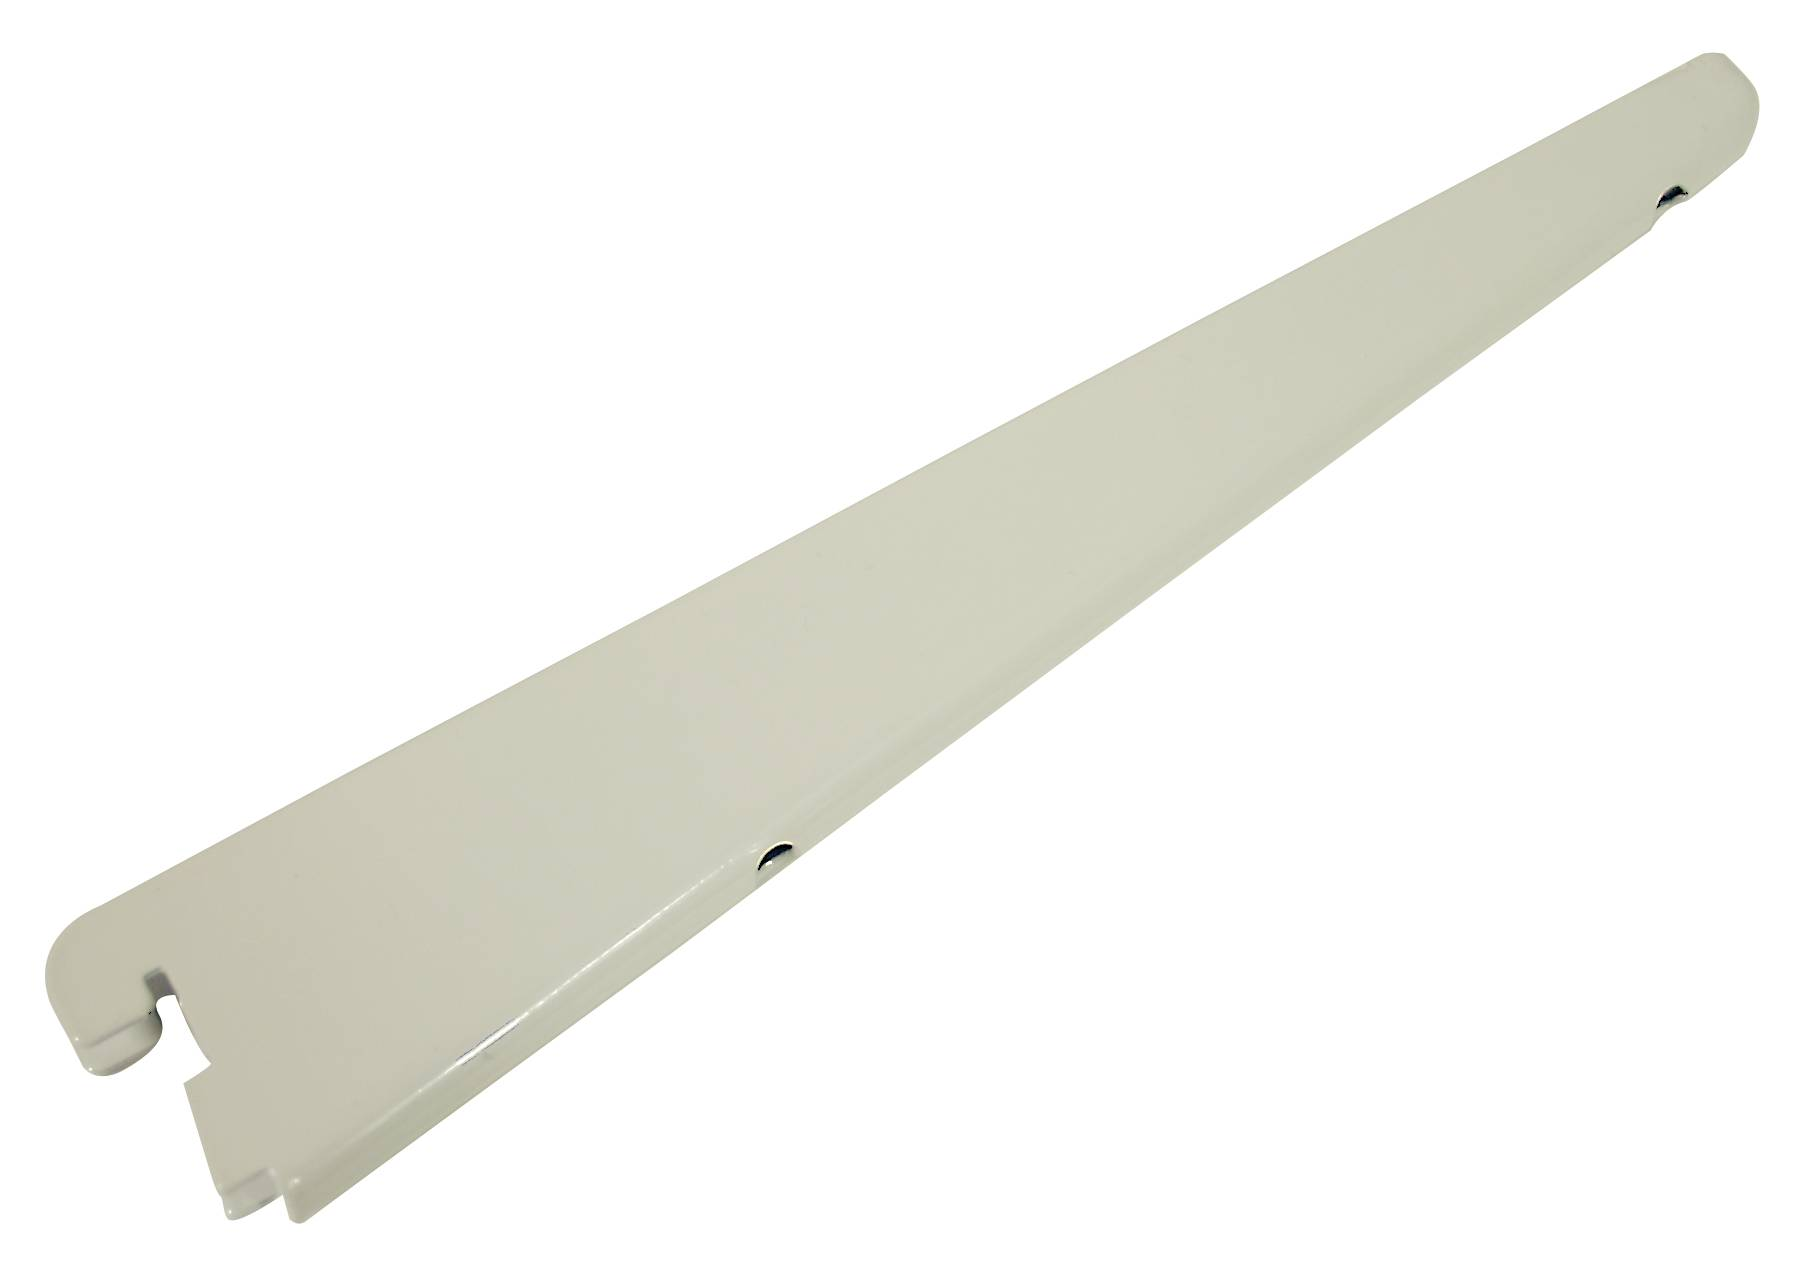 White Straight Twin Slot Shelf Brackets